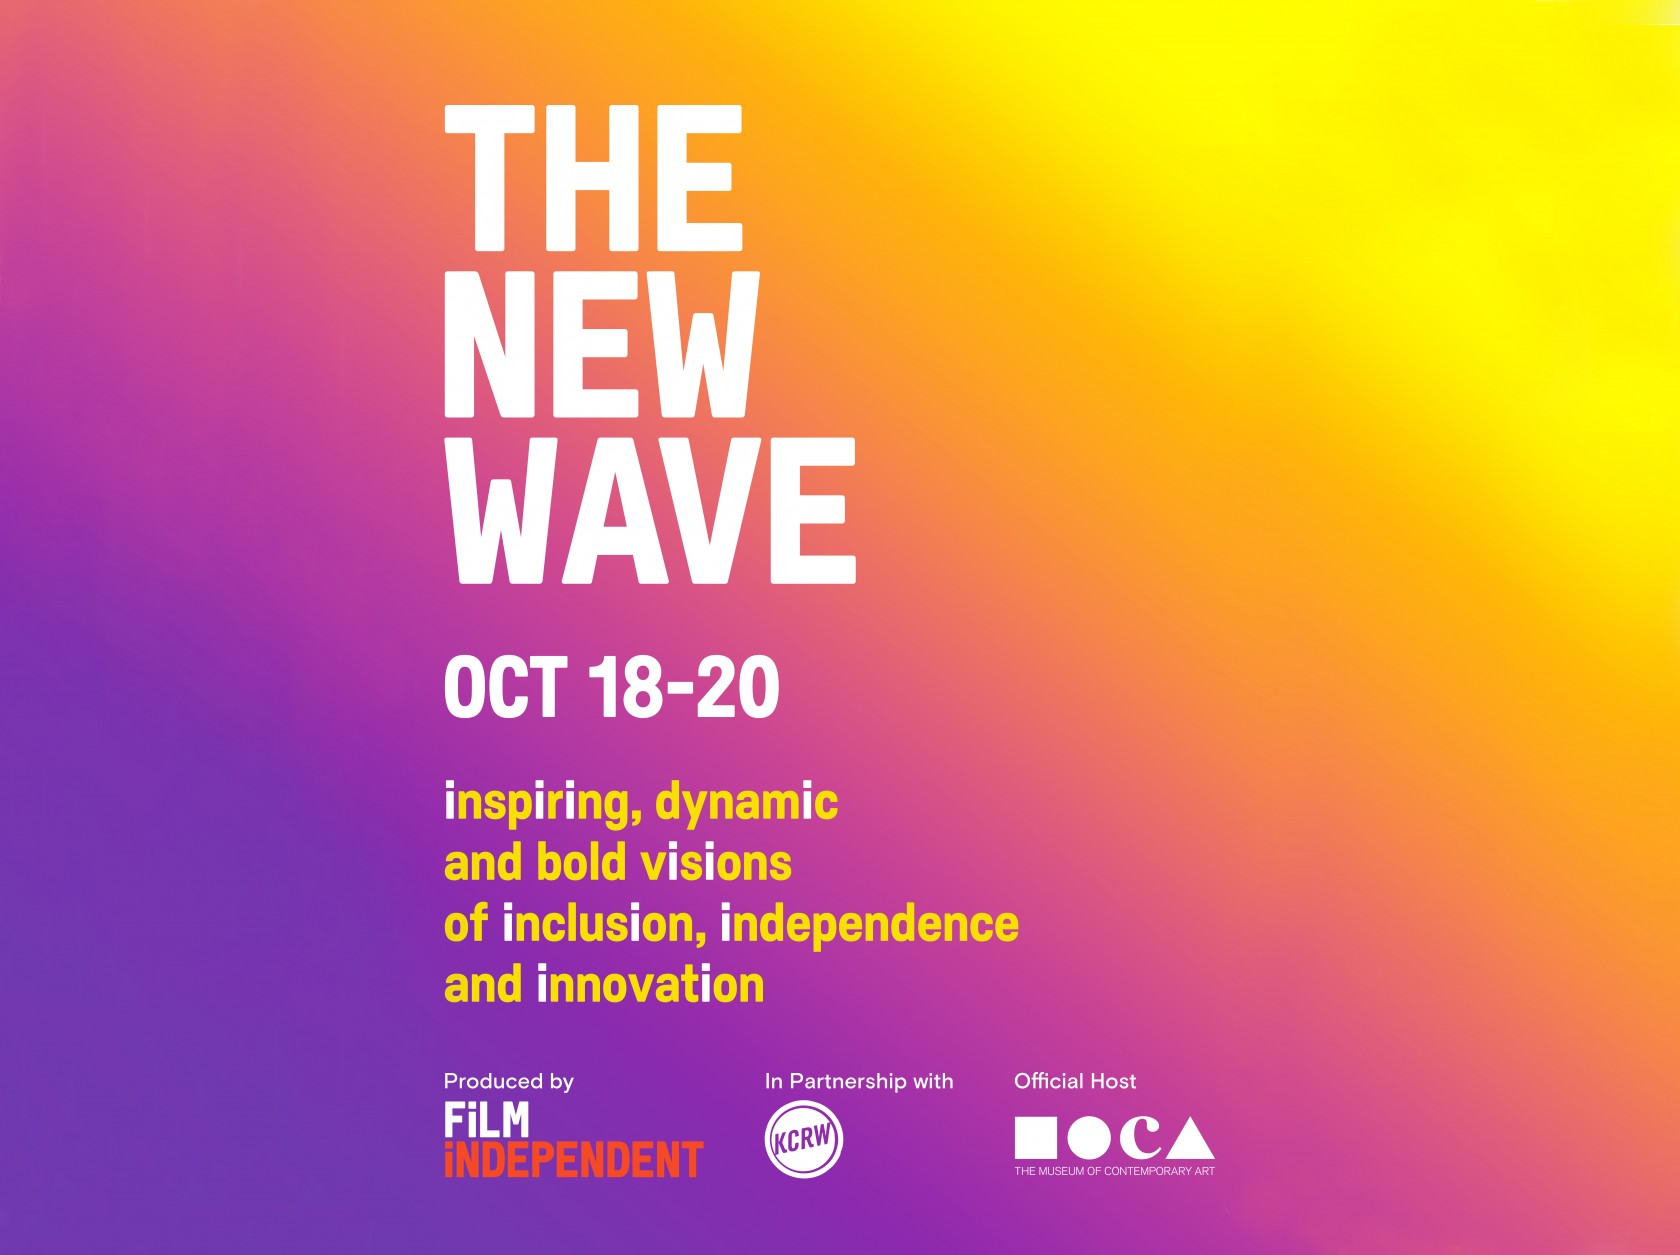 The New Wave: Film Independent in Partnership with KCRW and MOCA